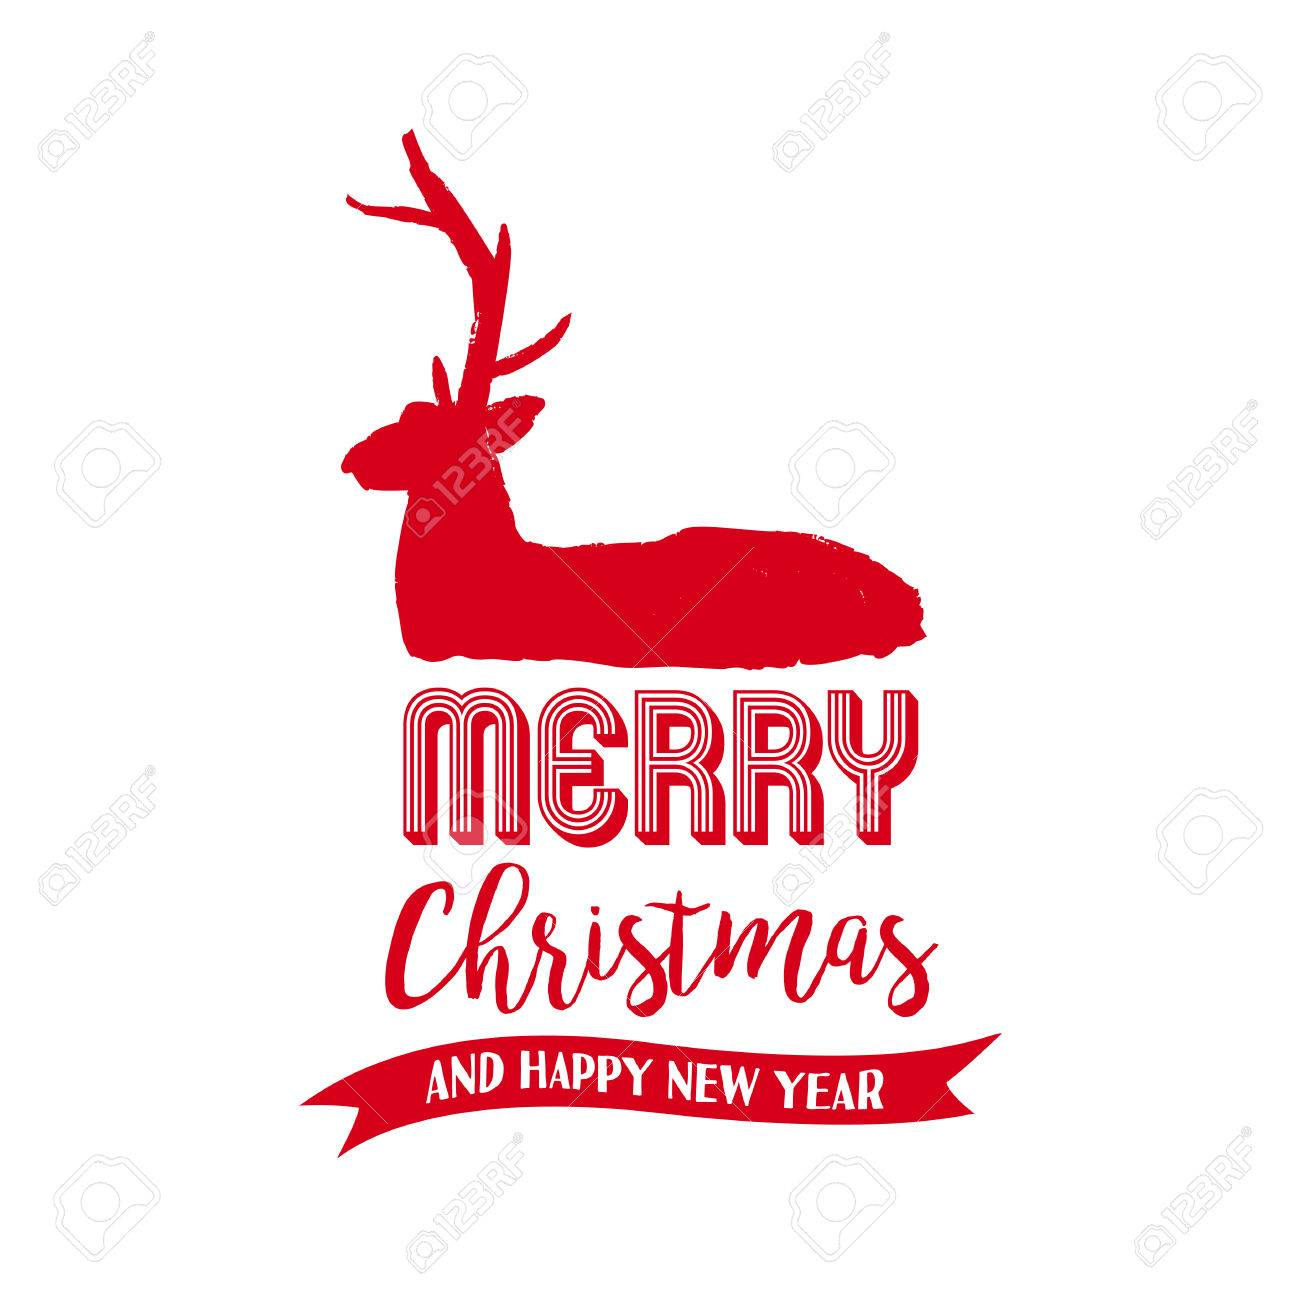 Merry Christmas Deer Text Quote, Calligraphy Lettering Design For Holiday  Season. Creative Red Typography